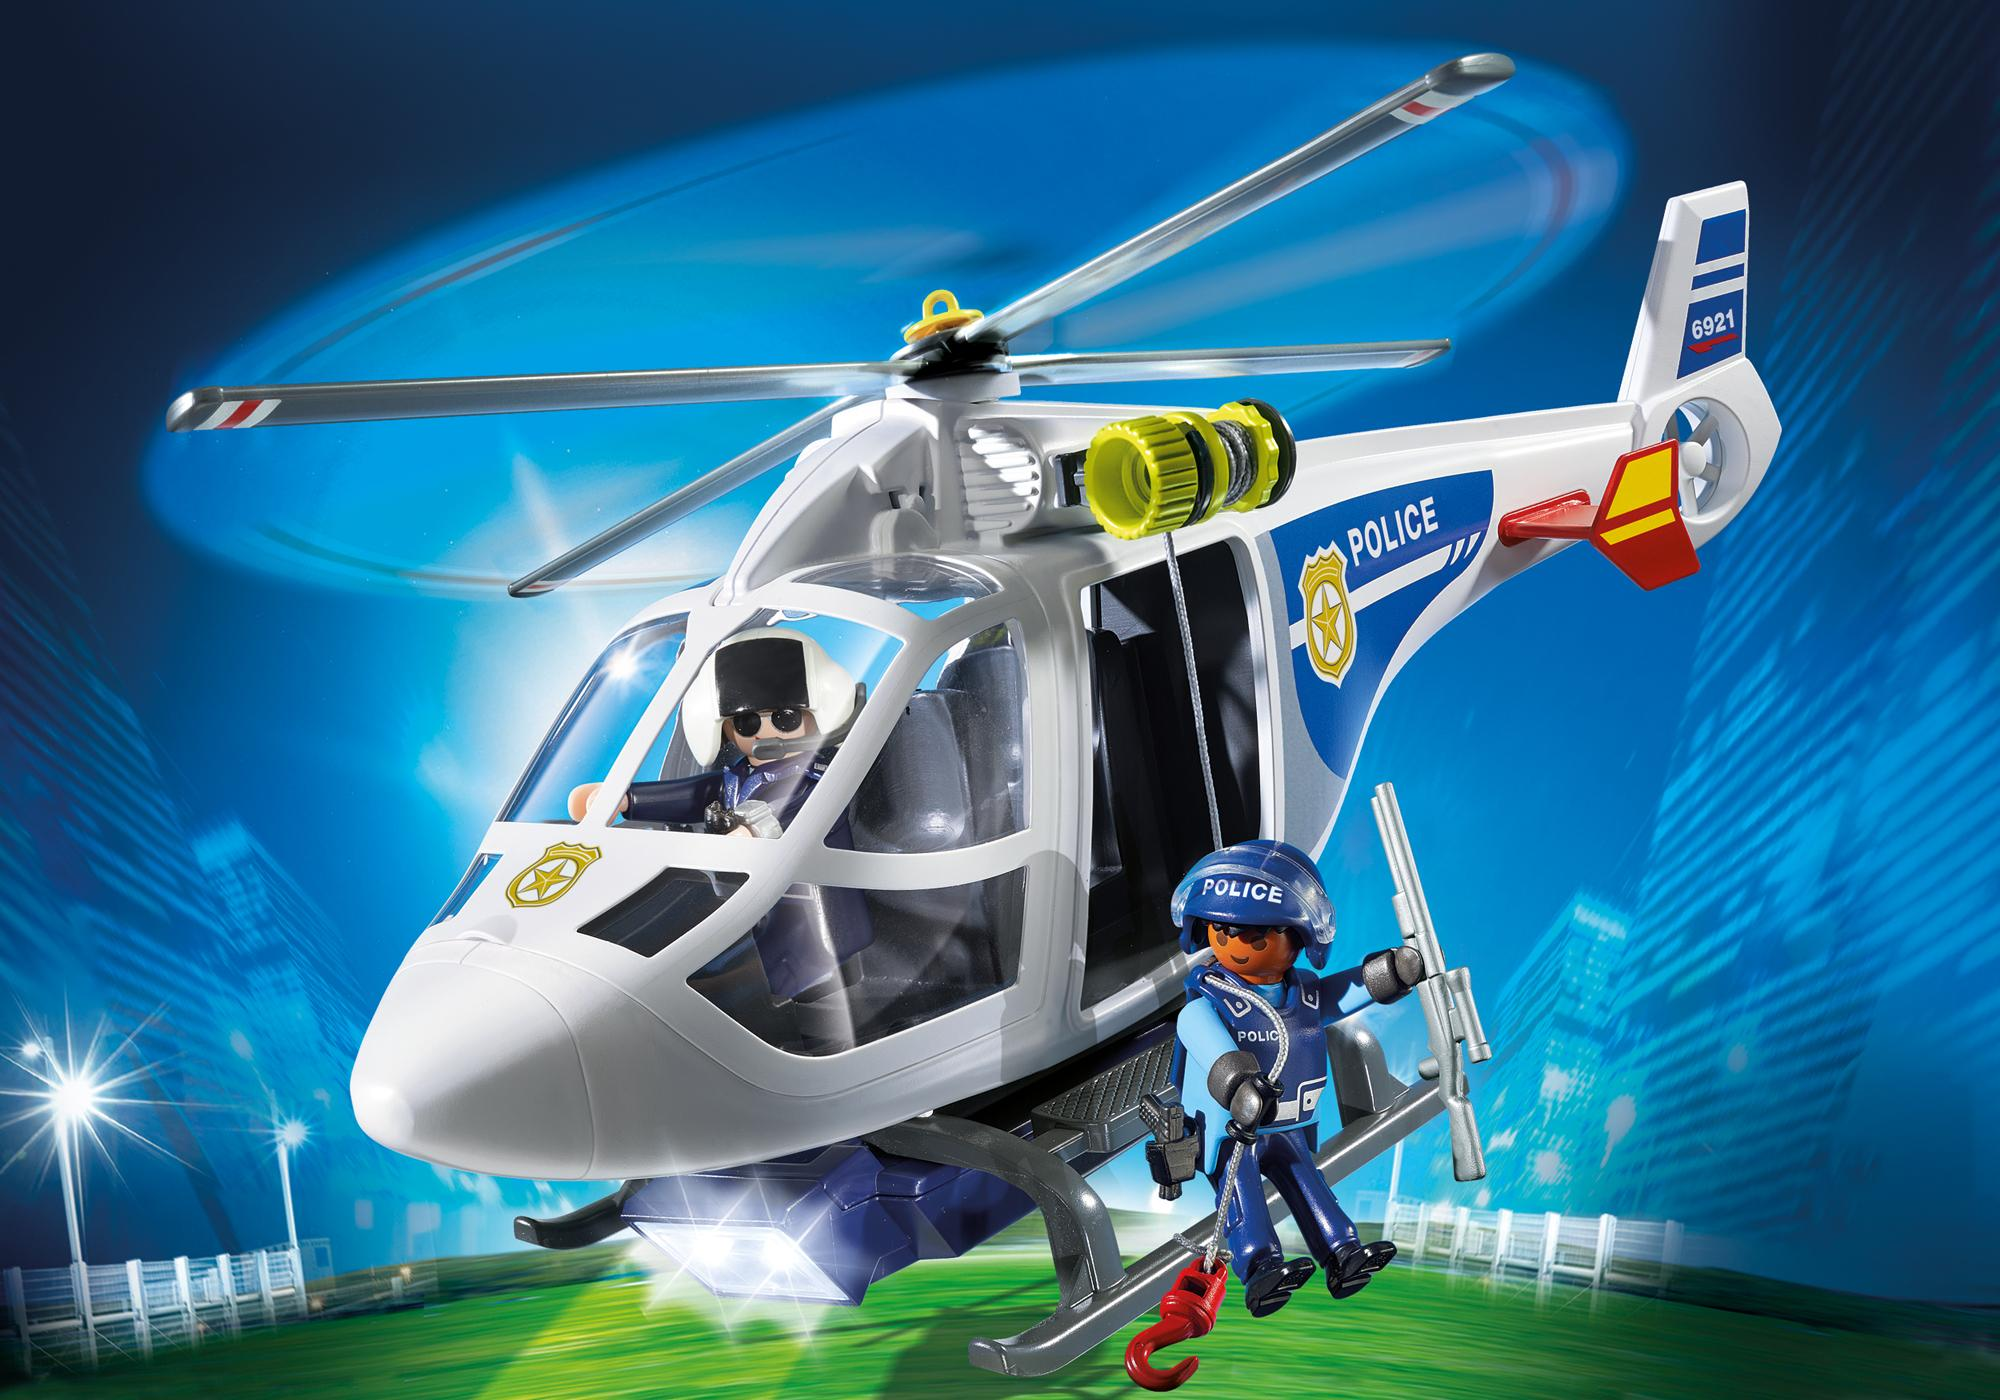 http://media.playmobil.com/i/playmobil/6921_product_detail